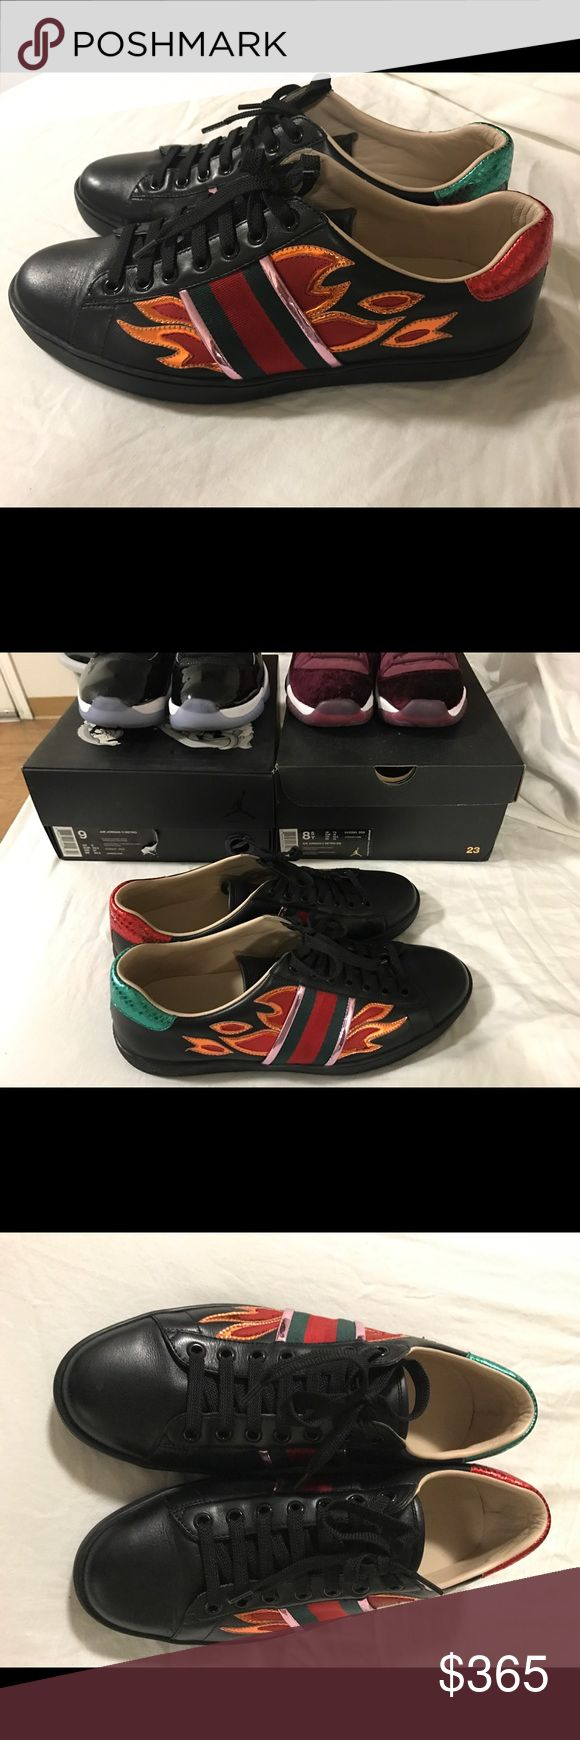 Gucci flame ace sneaker size 9 Gucci flame ace sneaker size 9 . Message me if you want I will send you my number and we can do p ay pal Gucci Shoes Sneakers